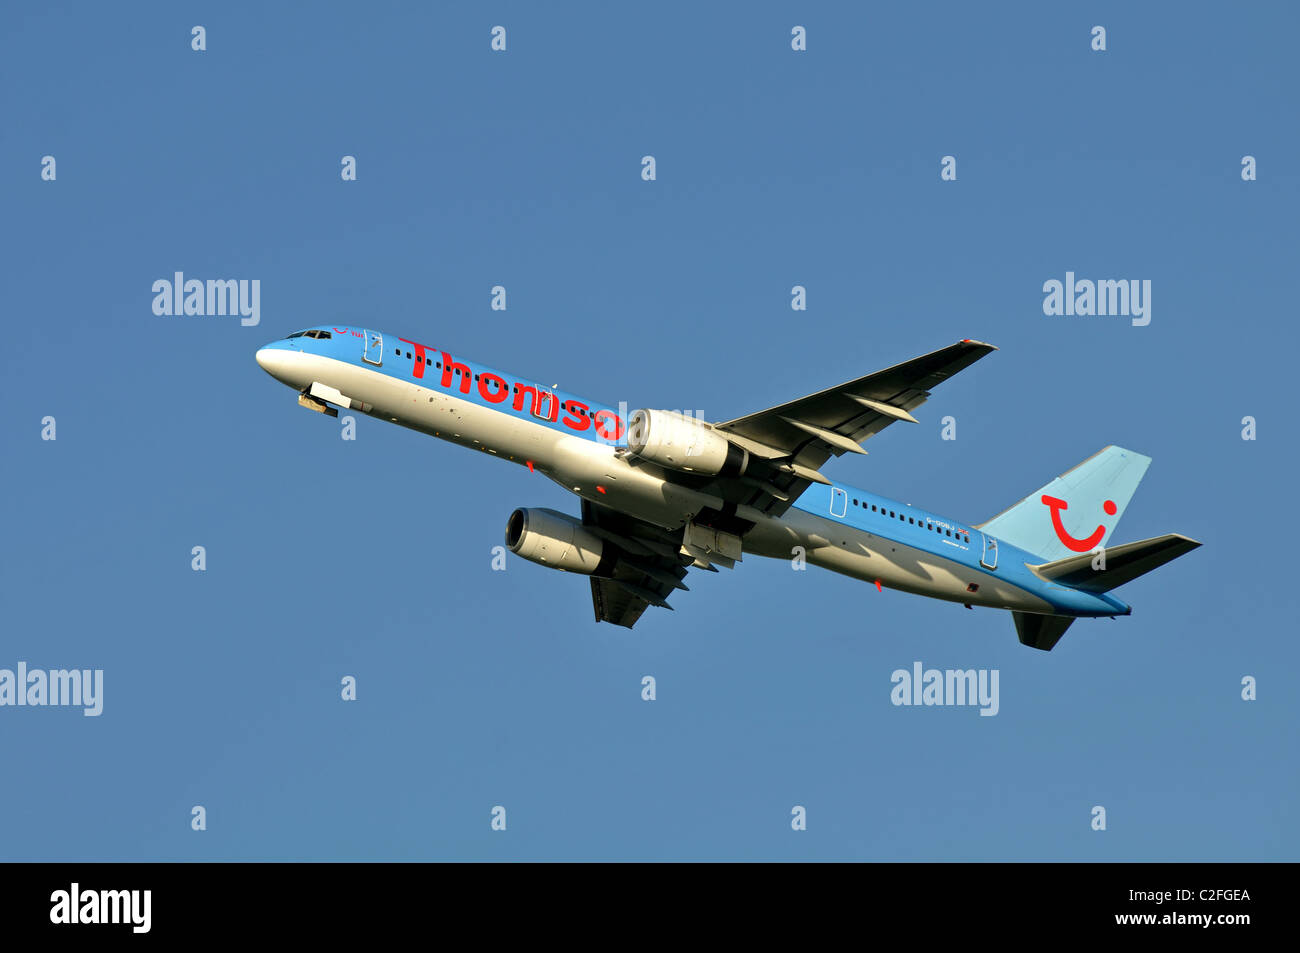 Thomson Boeing 757 aircraft taking off at Birmingham Airport, UK Stock Photo